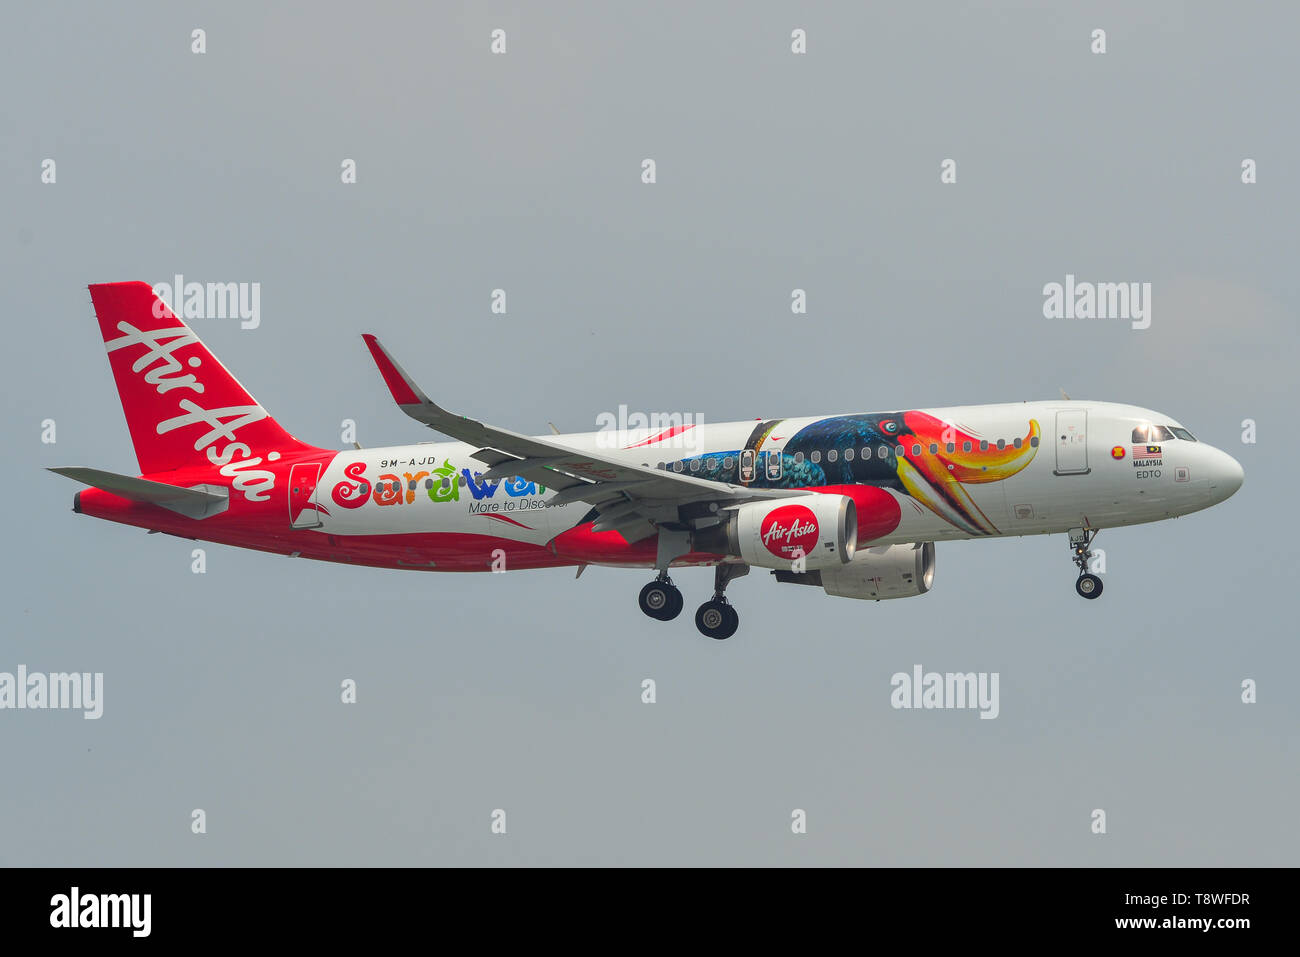 Blank Livery Stock Photos & Blank Livery Stock Images - Alamy